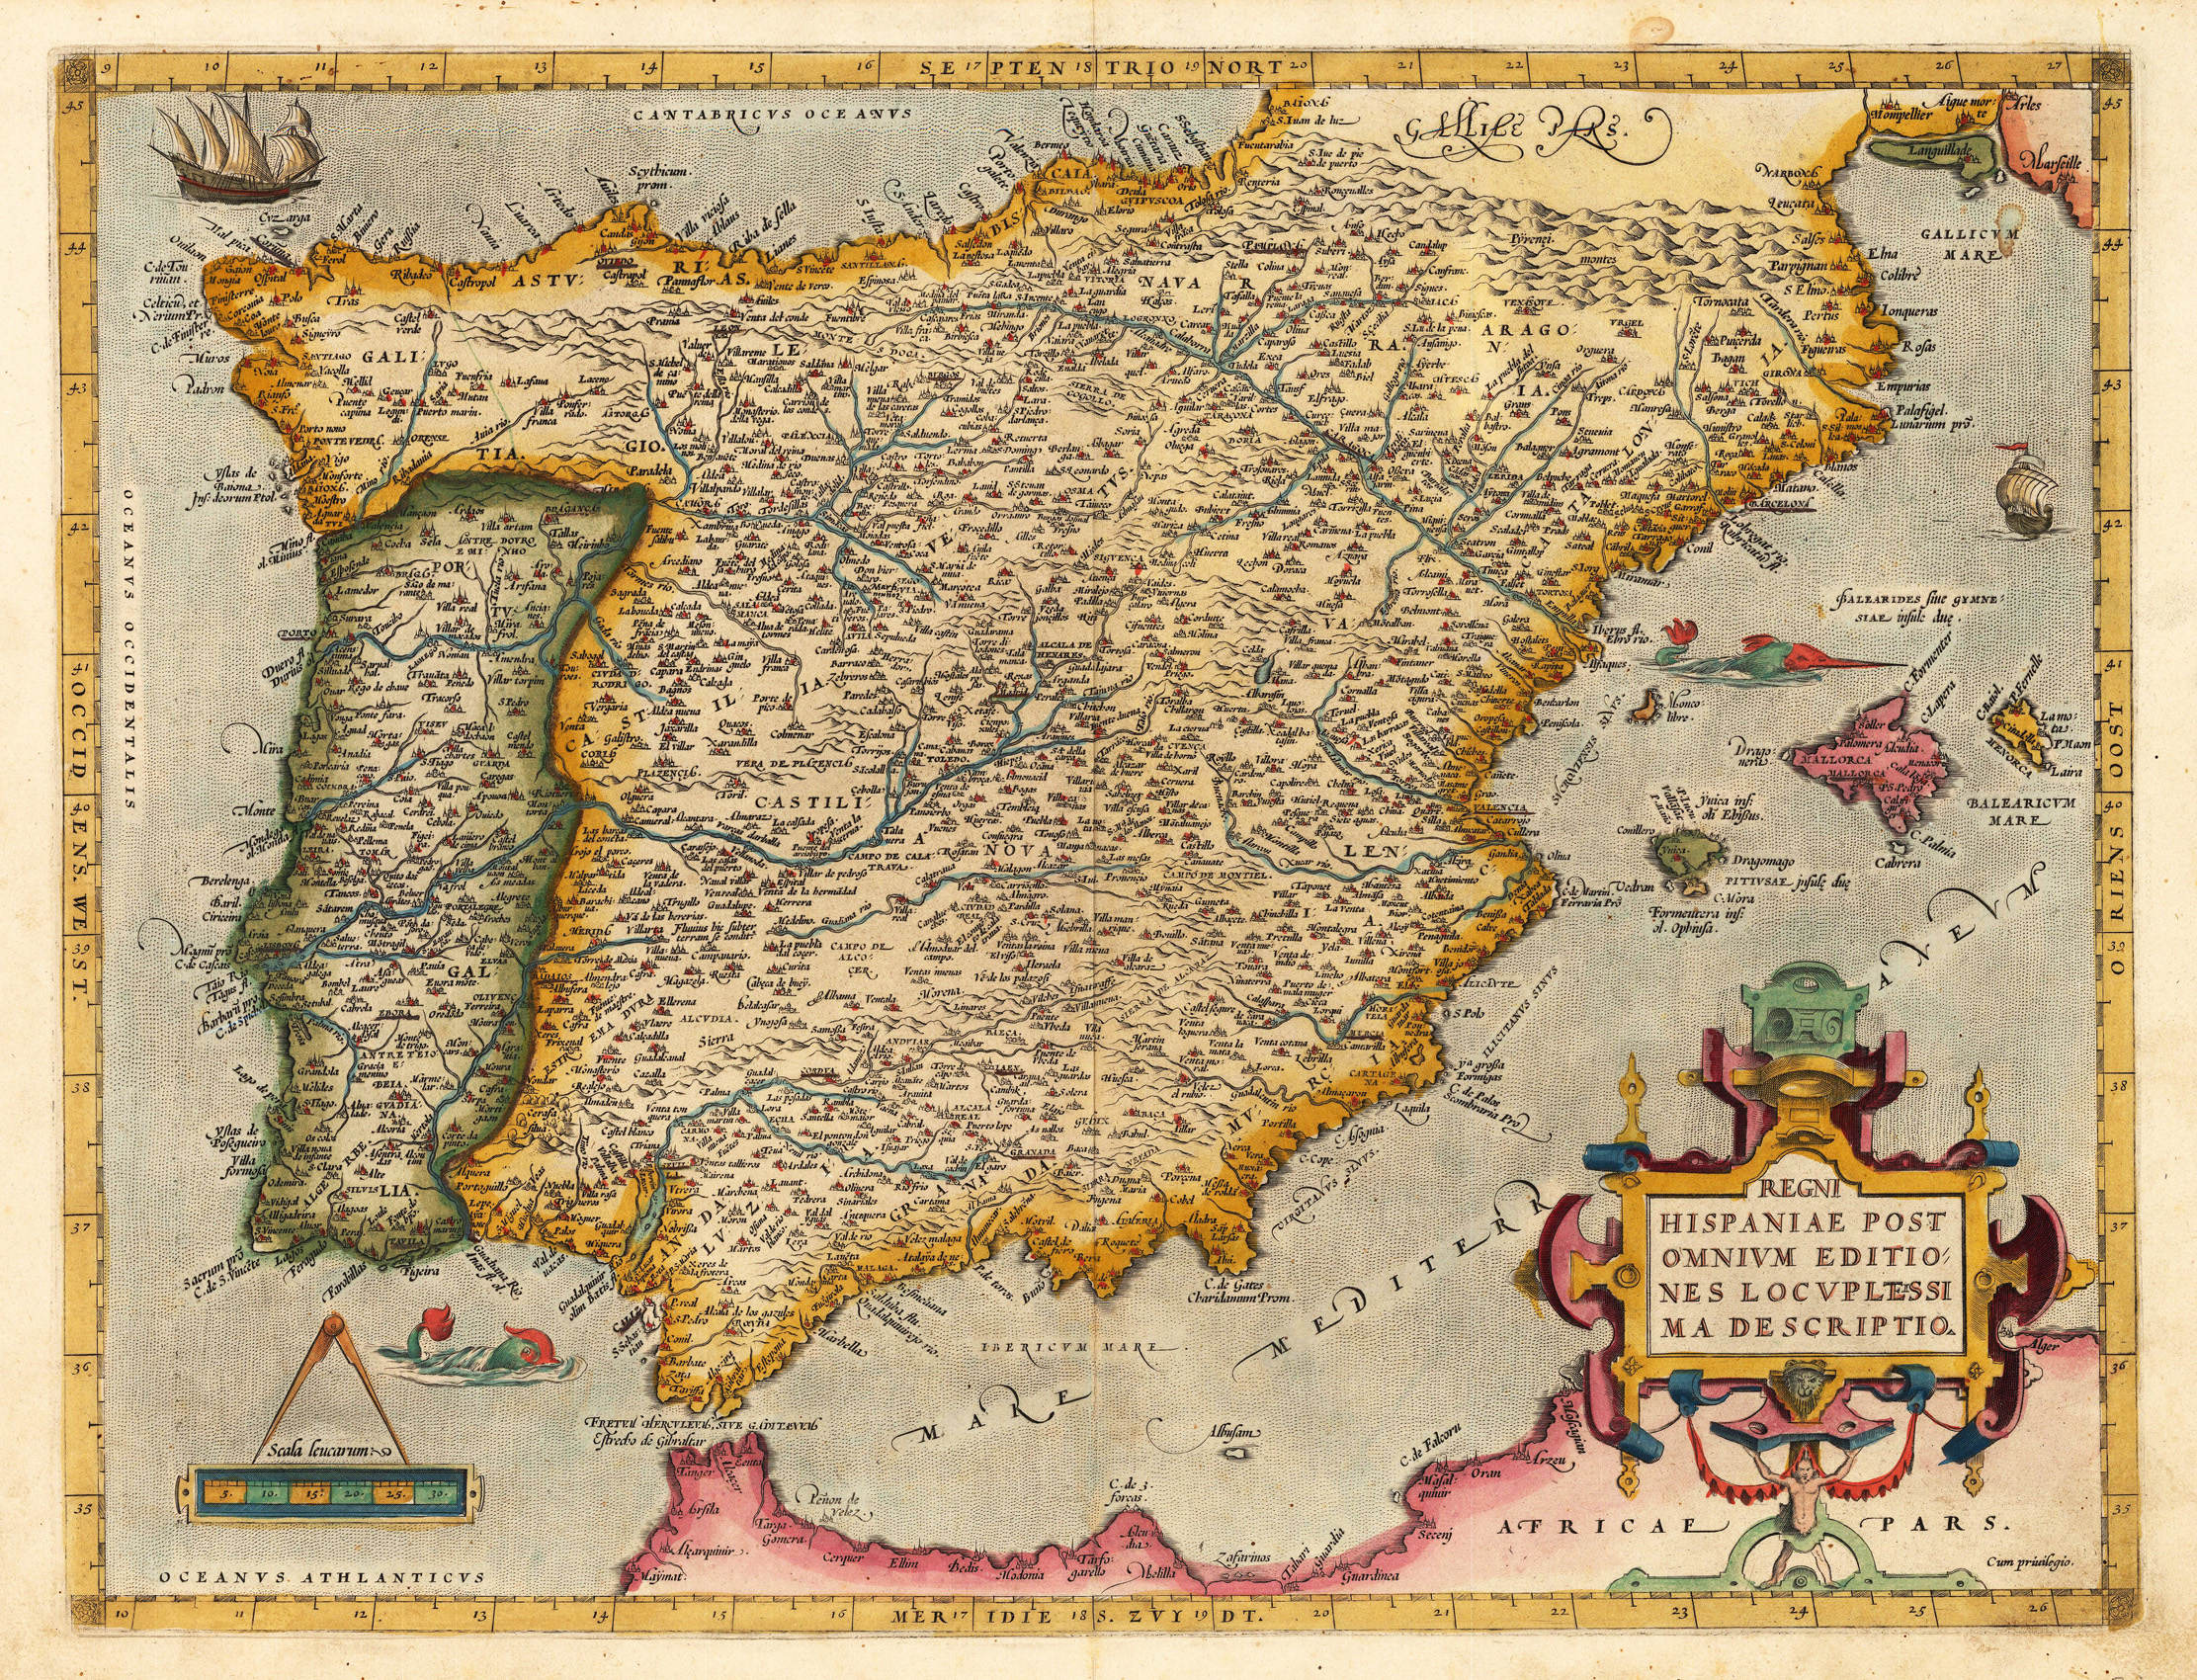 Illustration: Ortelius' map of the Iberian penninsula.